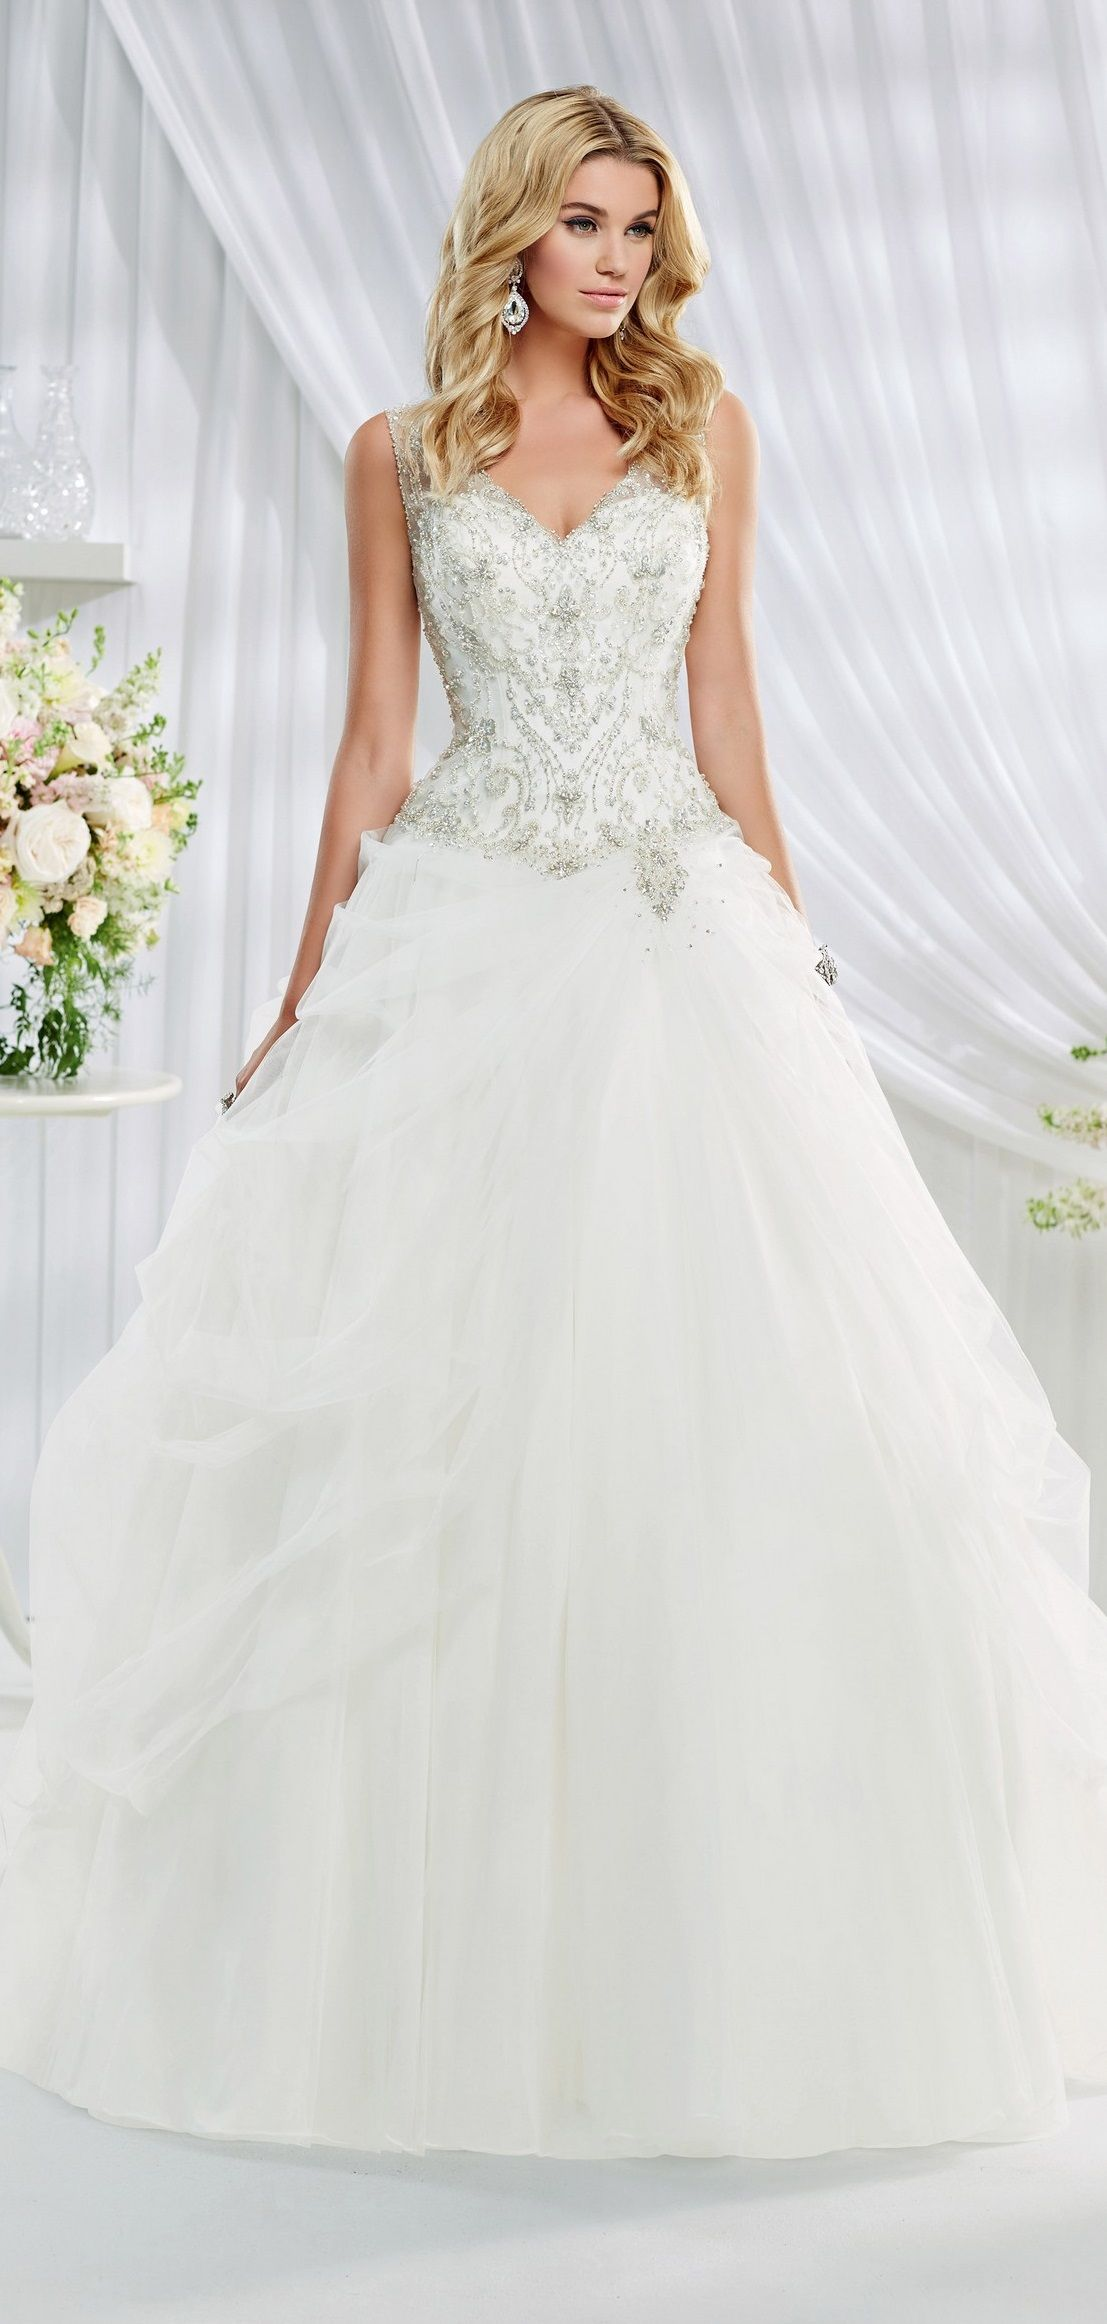 4985f0b067 Cinderella wedding dress